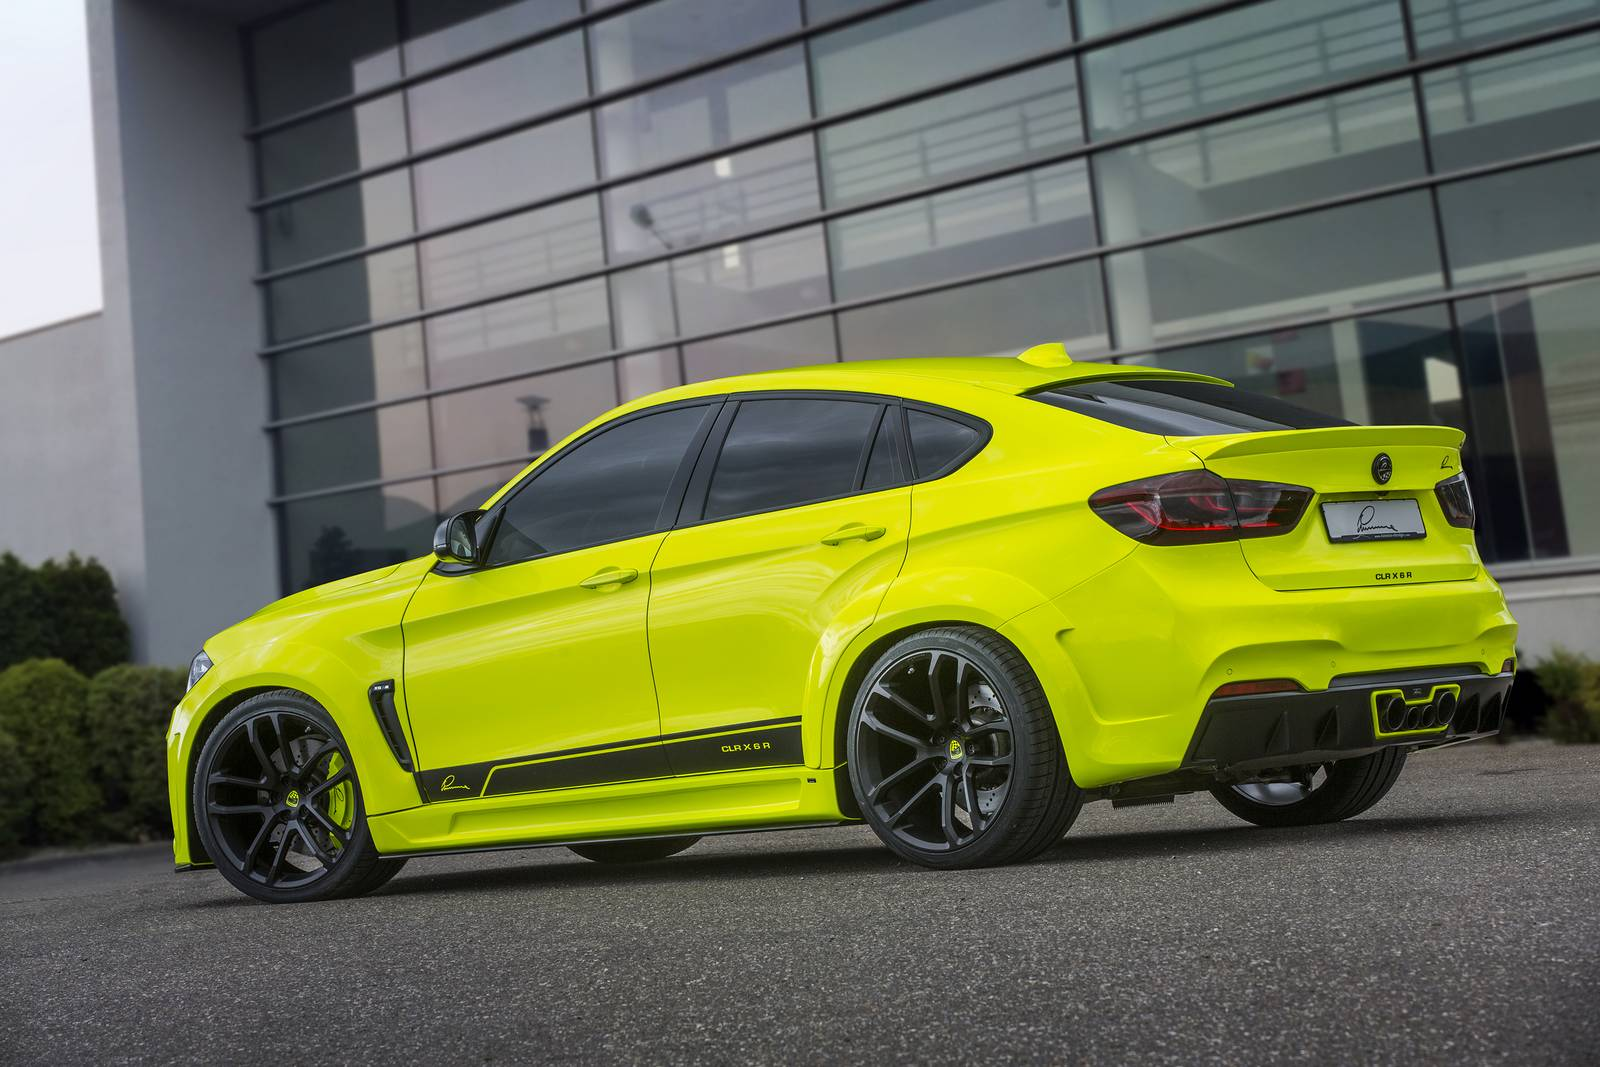 Official 750hp Lumma Design Bmw X6 M Widebody Gtspirit